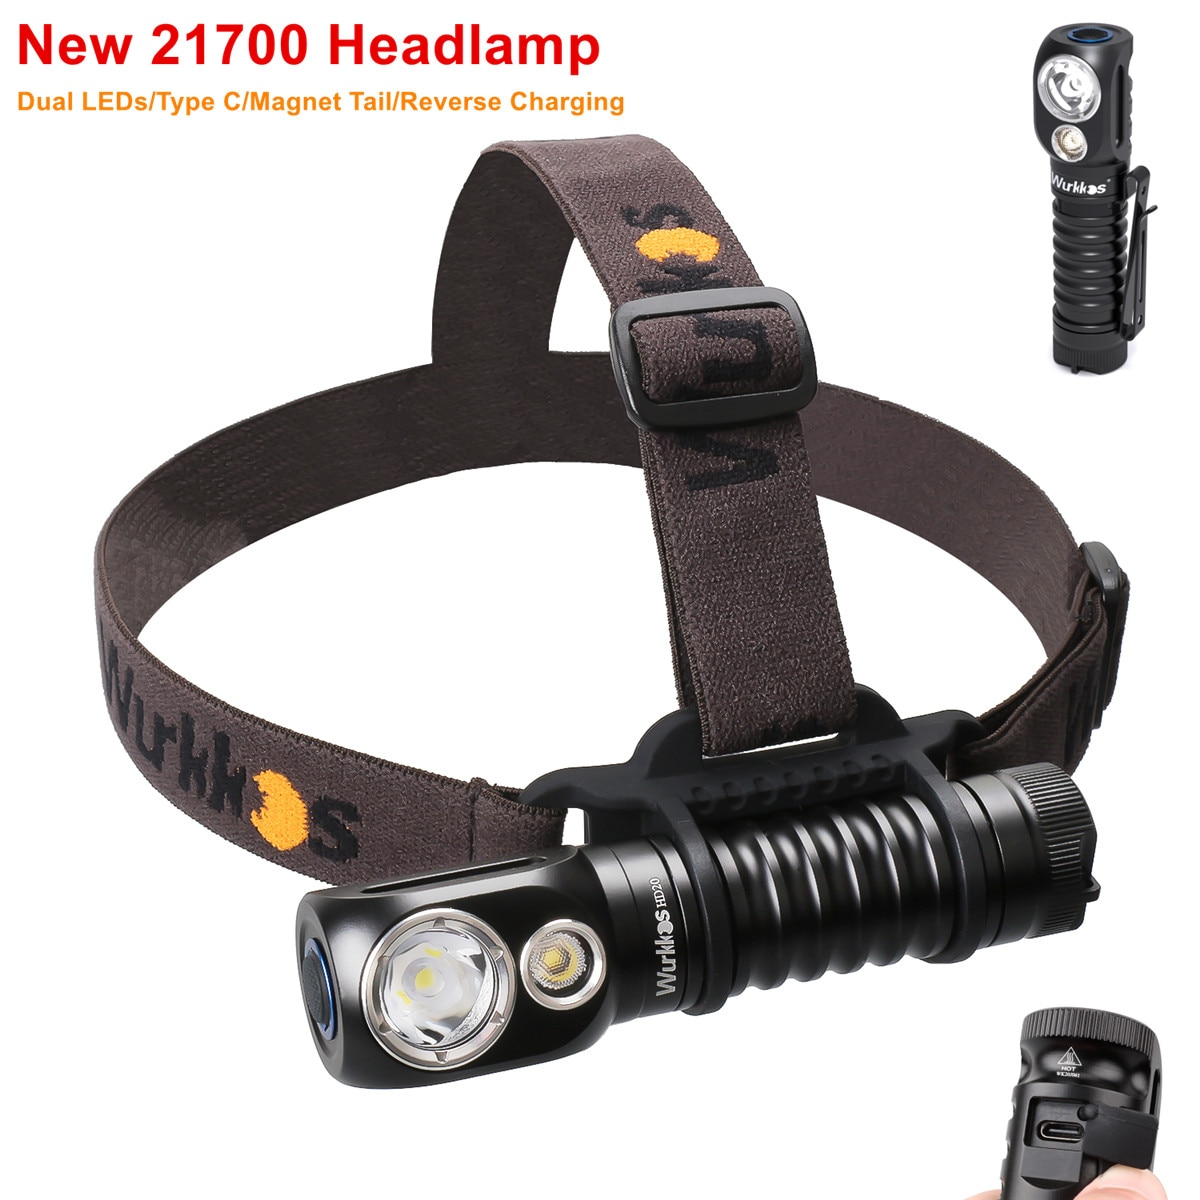 Wurkkos HD20 Rechargeable Headlamp 21700  LED light 2000lm Dual LED LH351D PL with Type C Reverse Charge Magnetic Tail